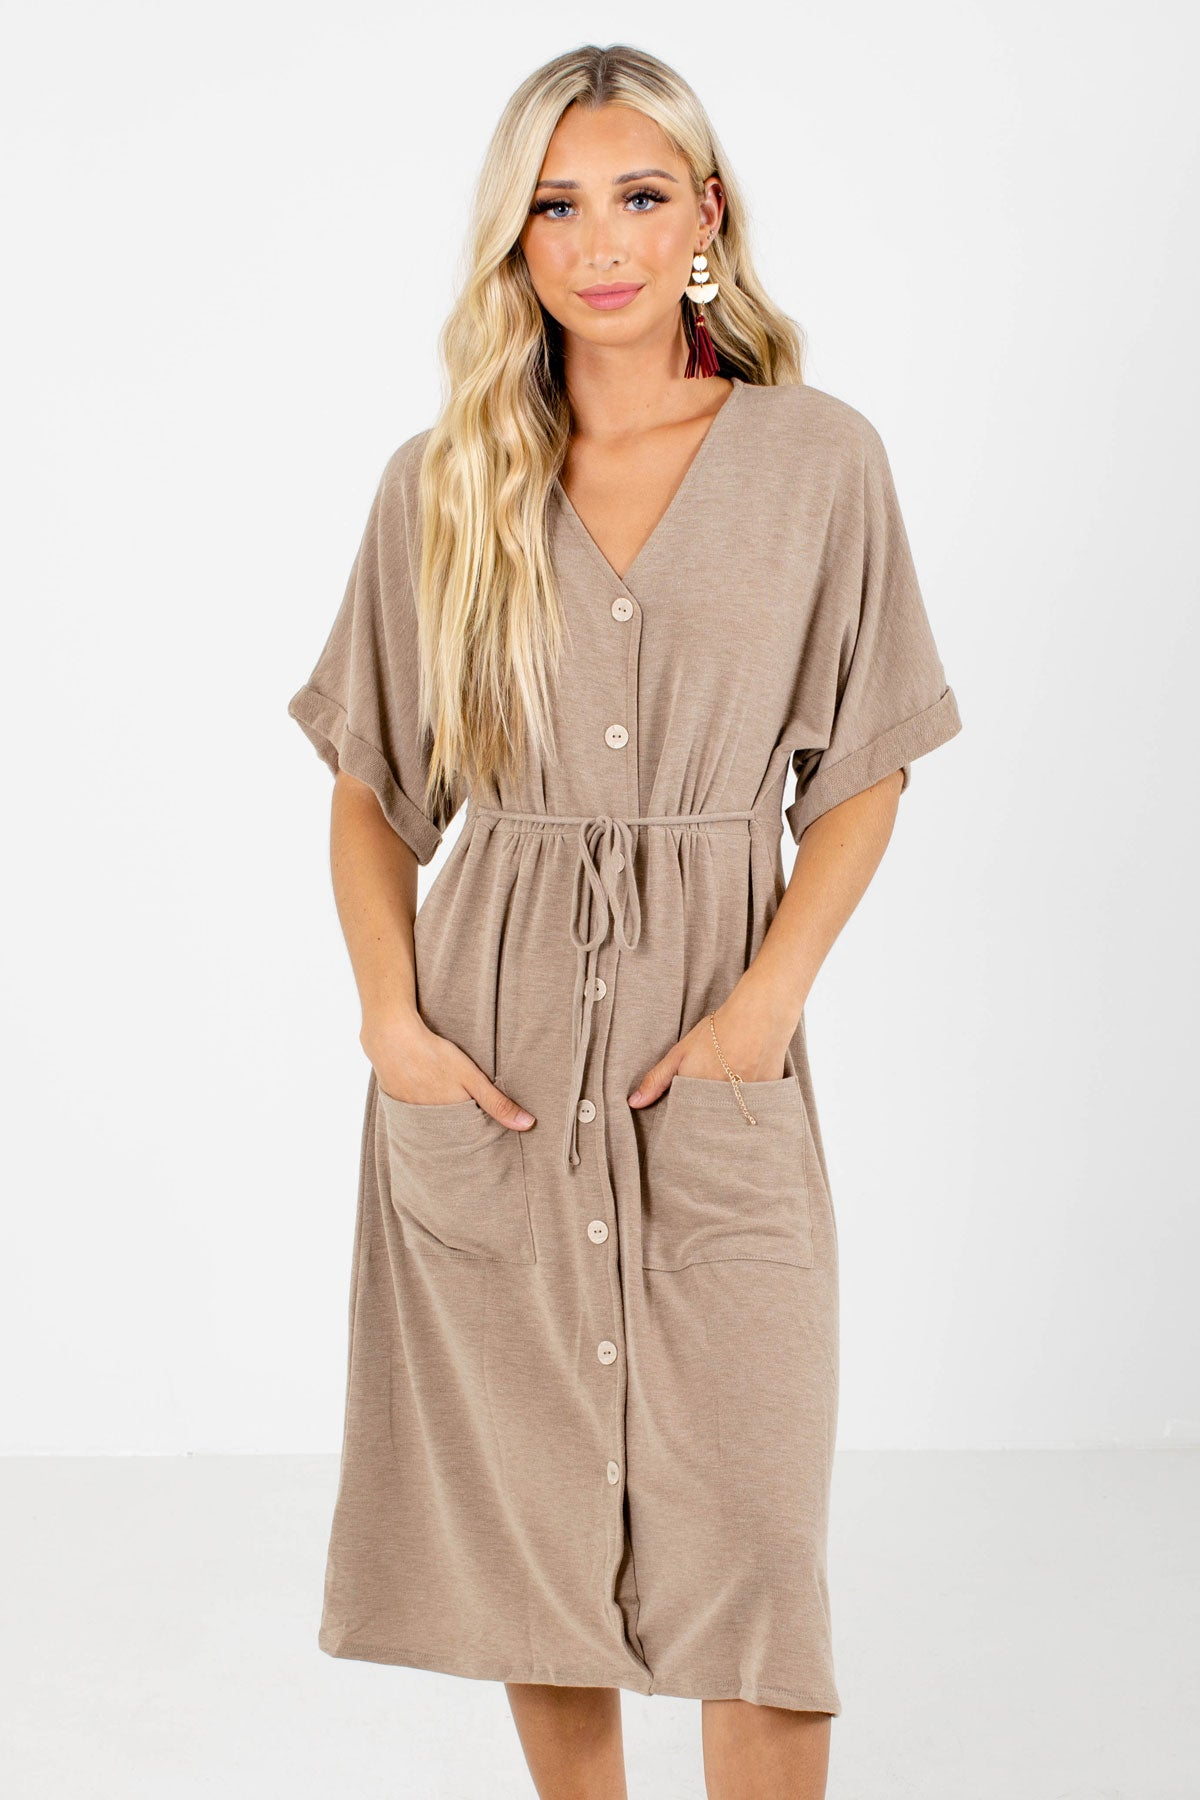 Brown Button-Up Front Boutique Midi Dresses for Women